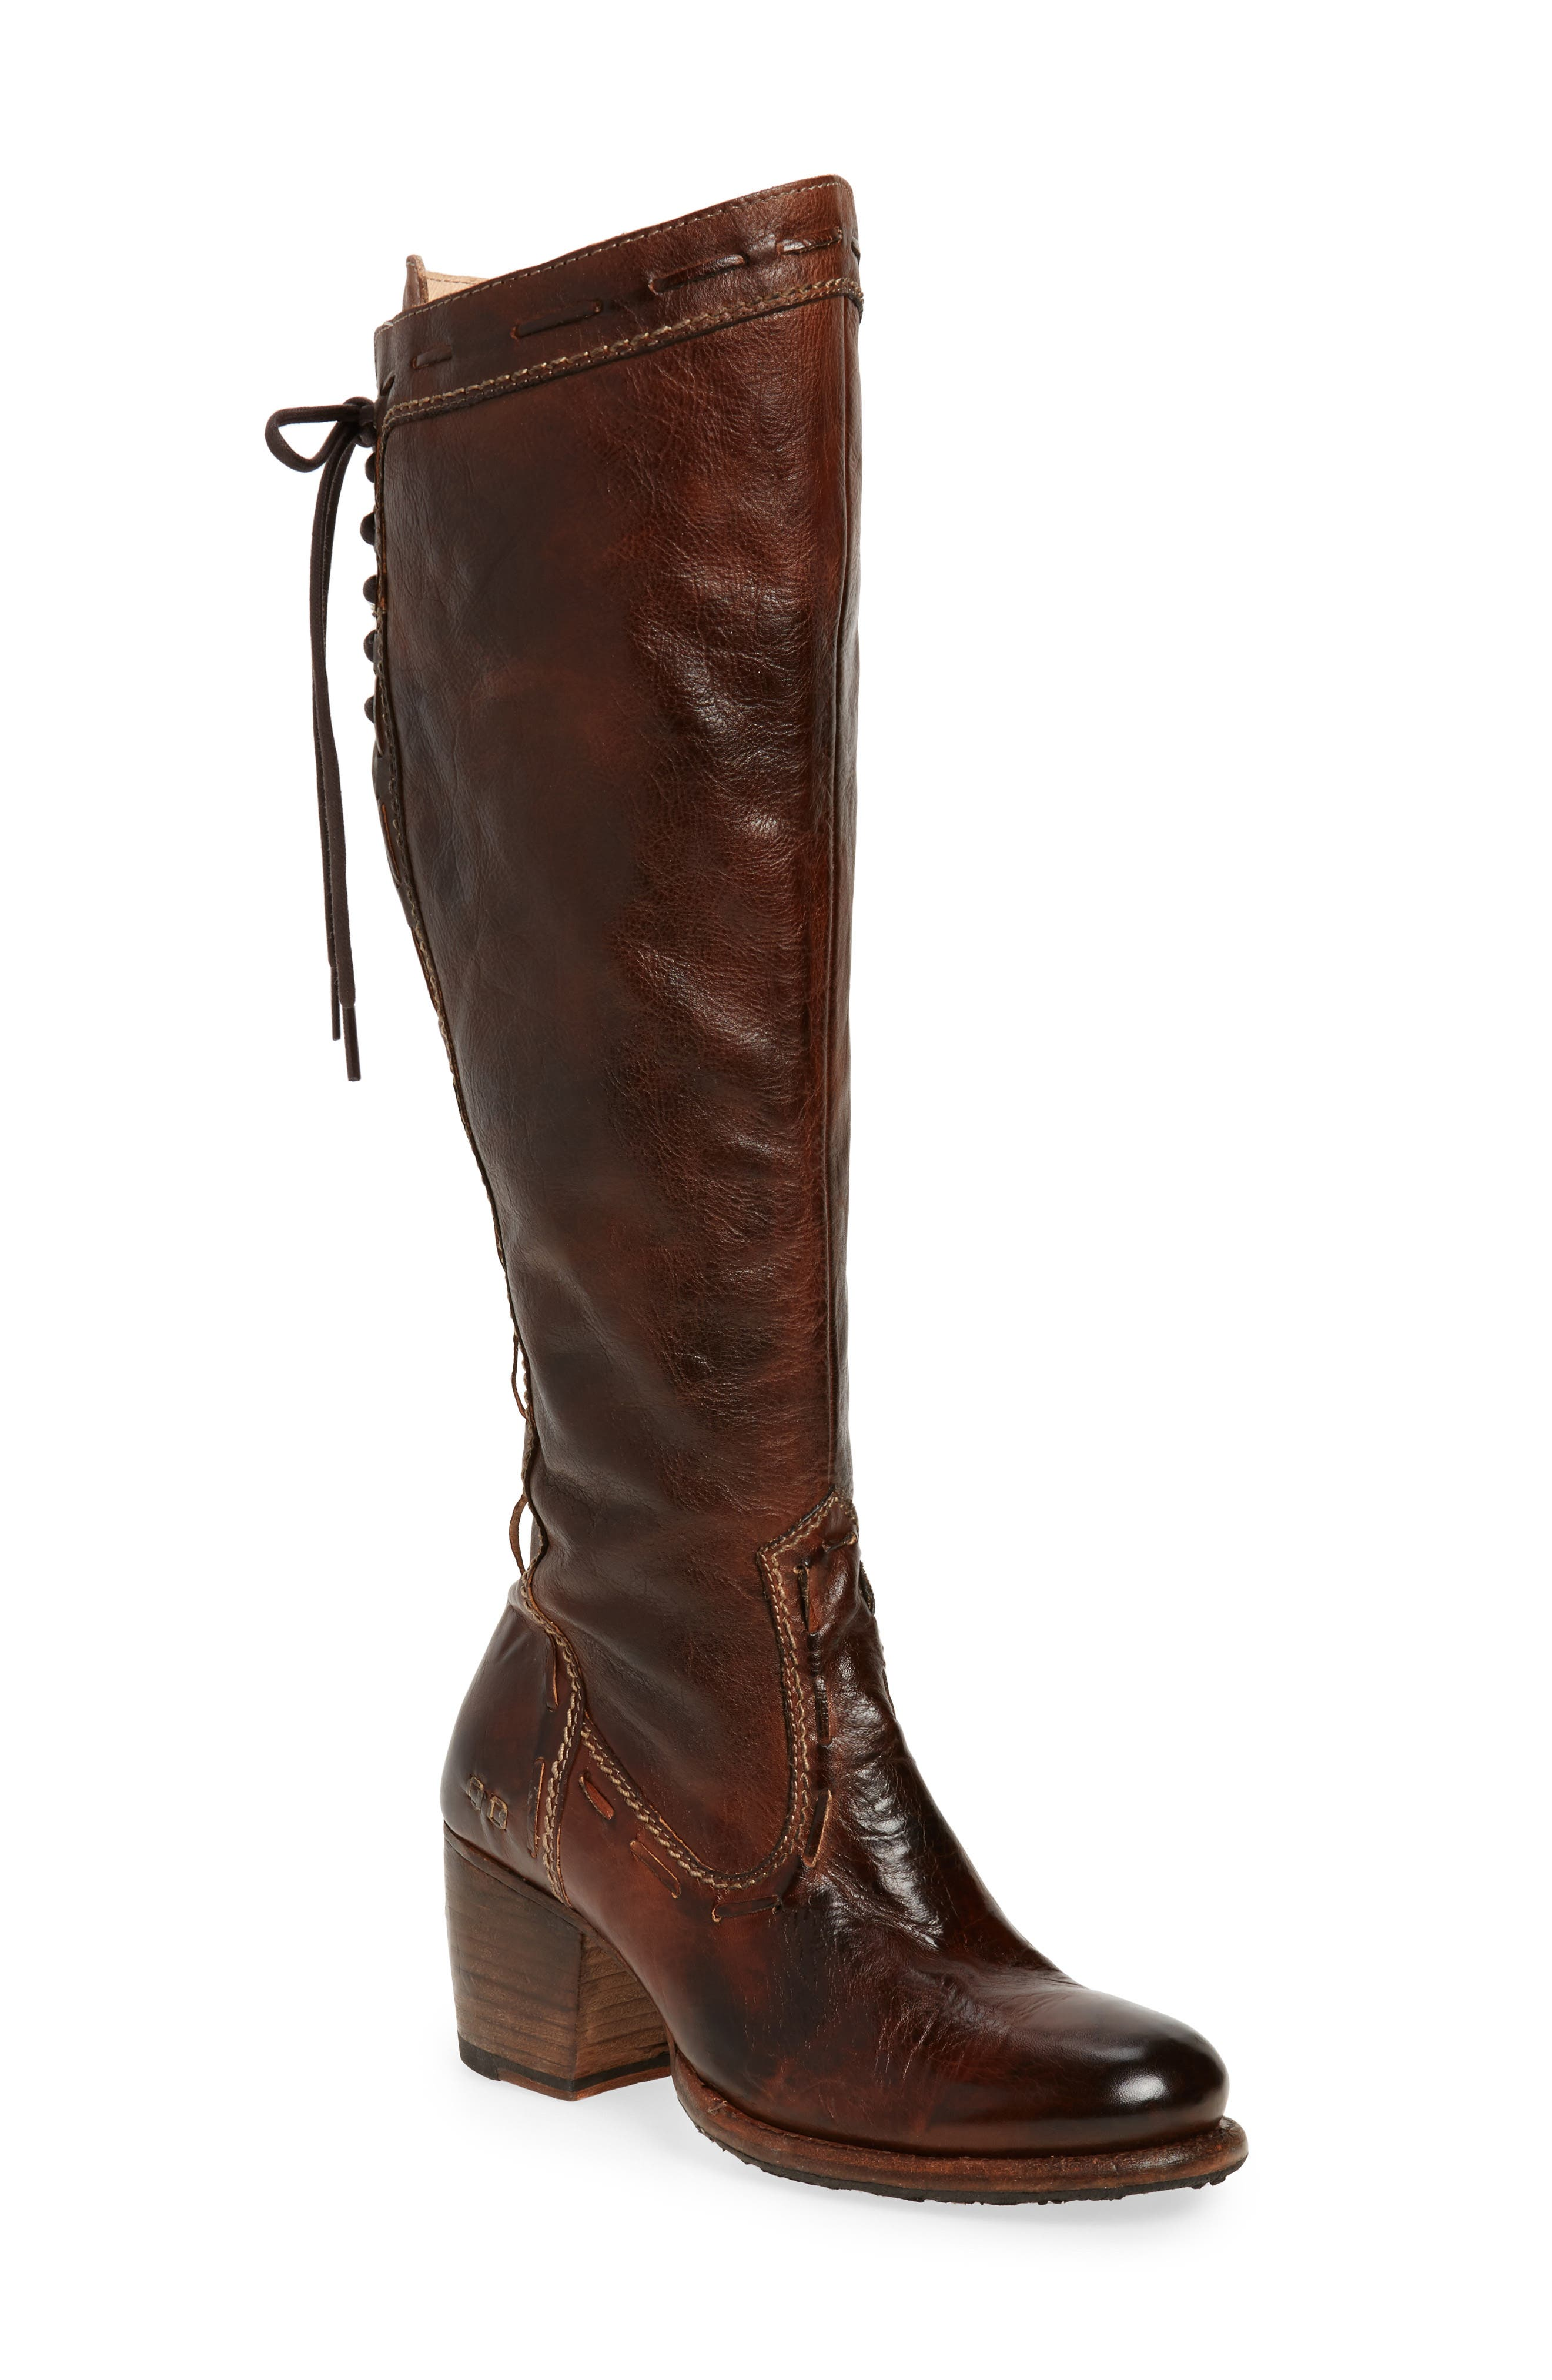 Alternate Image 1 Selected - Bed Stu Fortune Knee High Boot (Women)